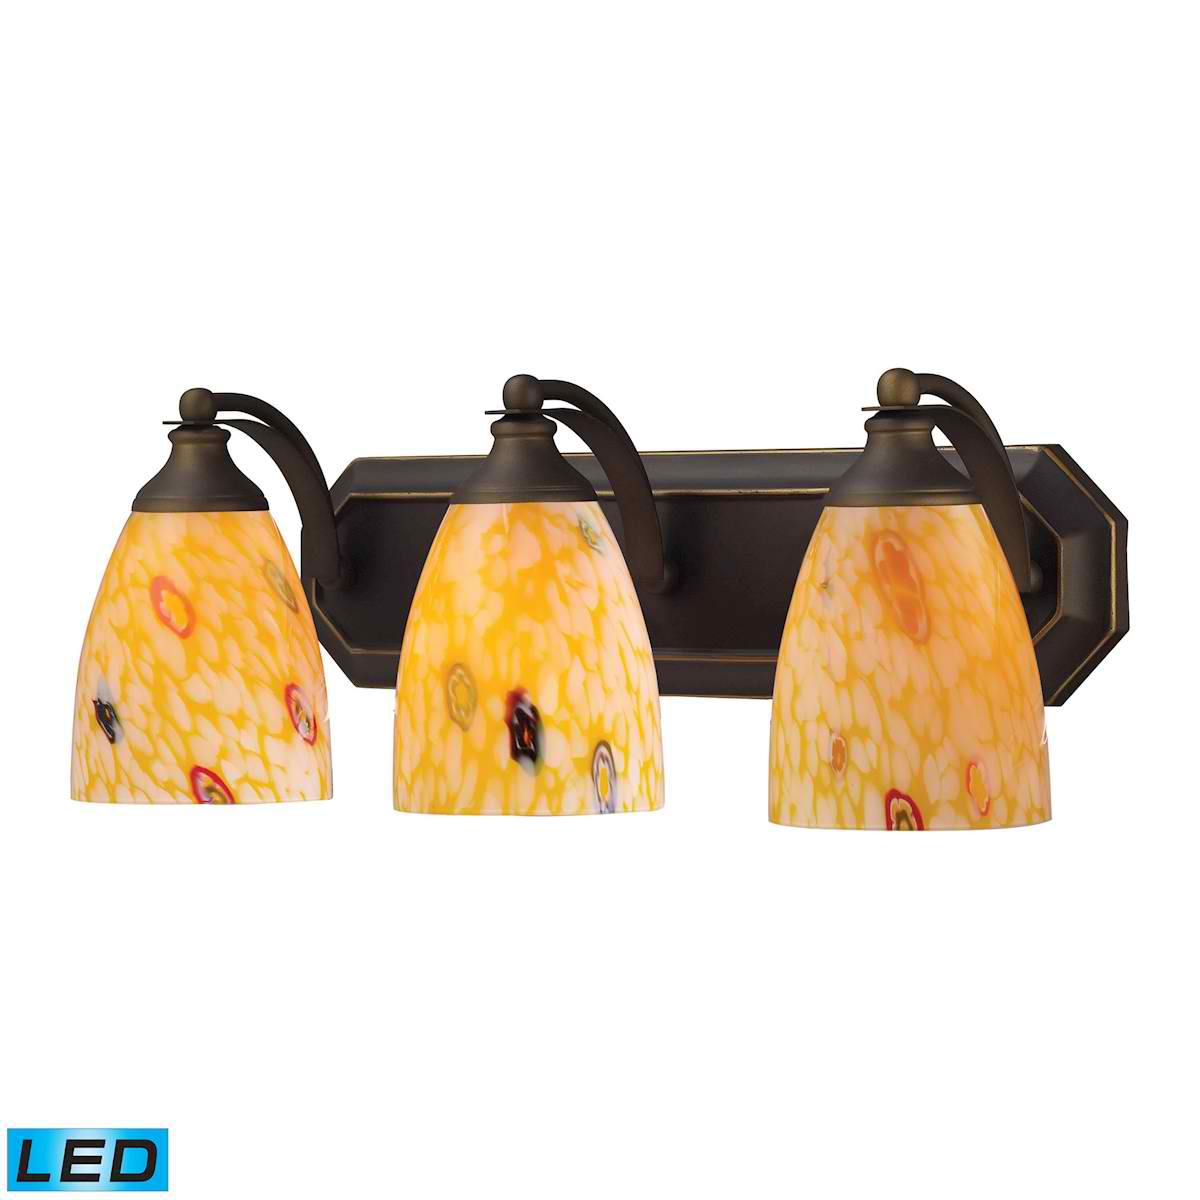 3 Light Vanity in Aged Bronze and Yellow Blaze Glass - LED, 800 Lumens (2400 Lumens Total) with Full Scale